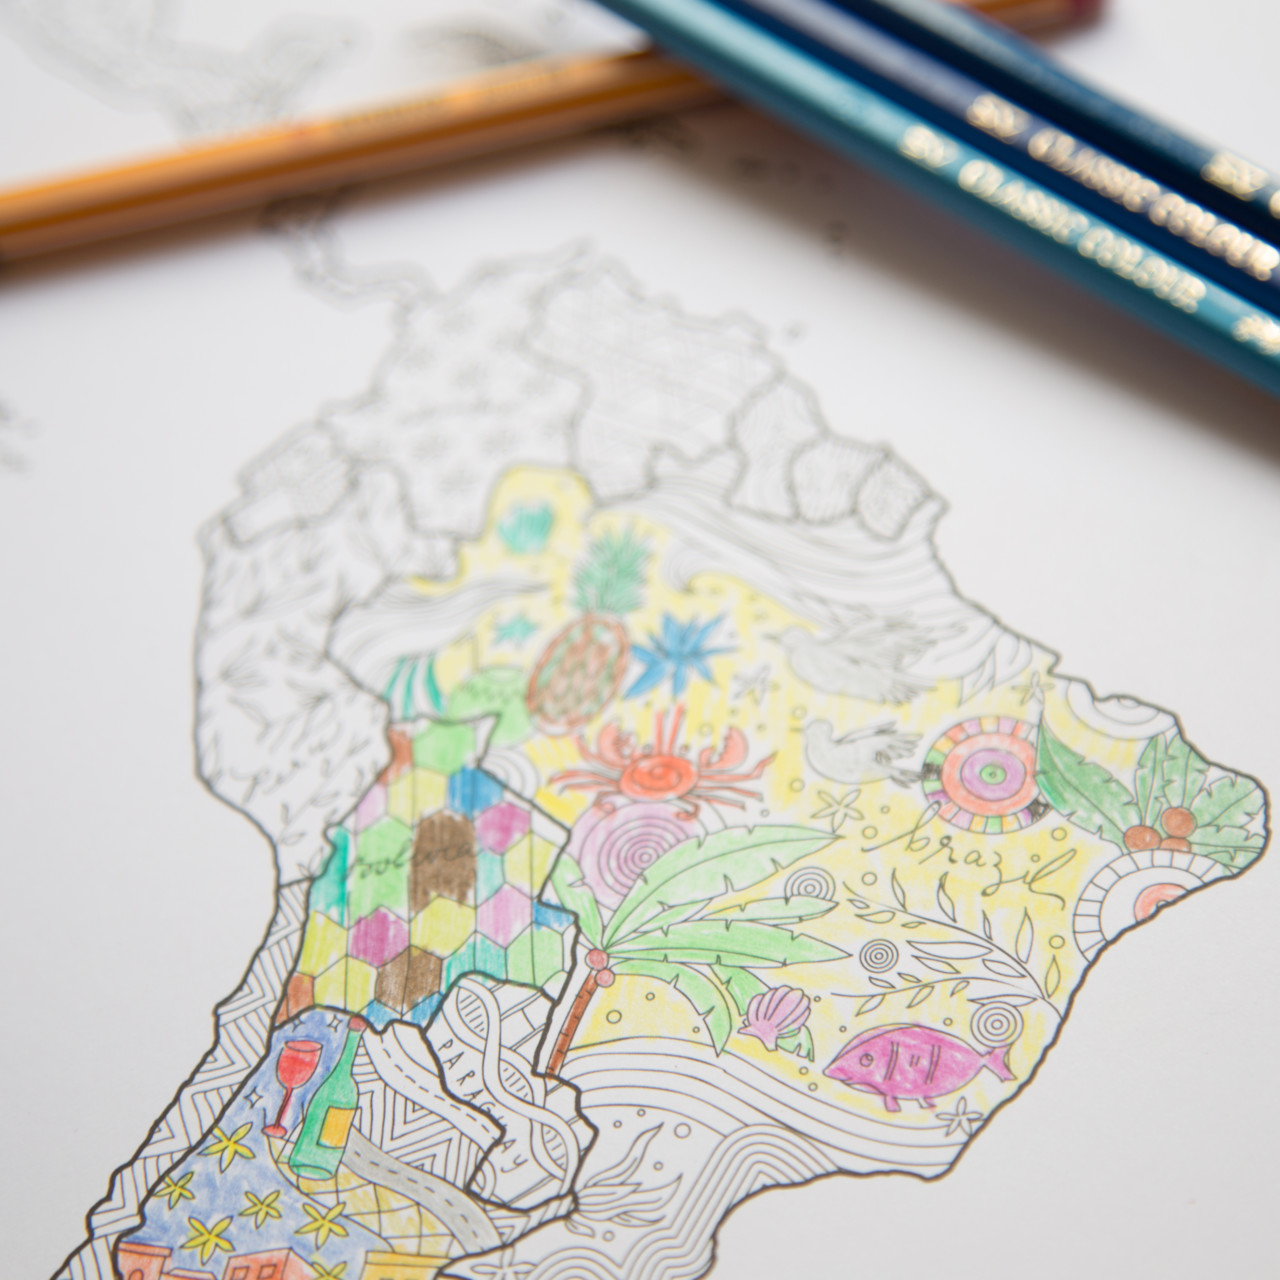 Coloring Map: Inkleur wereldkaart